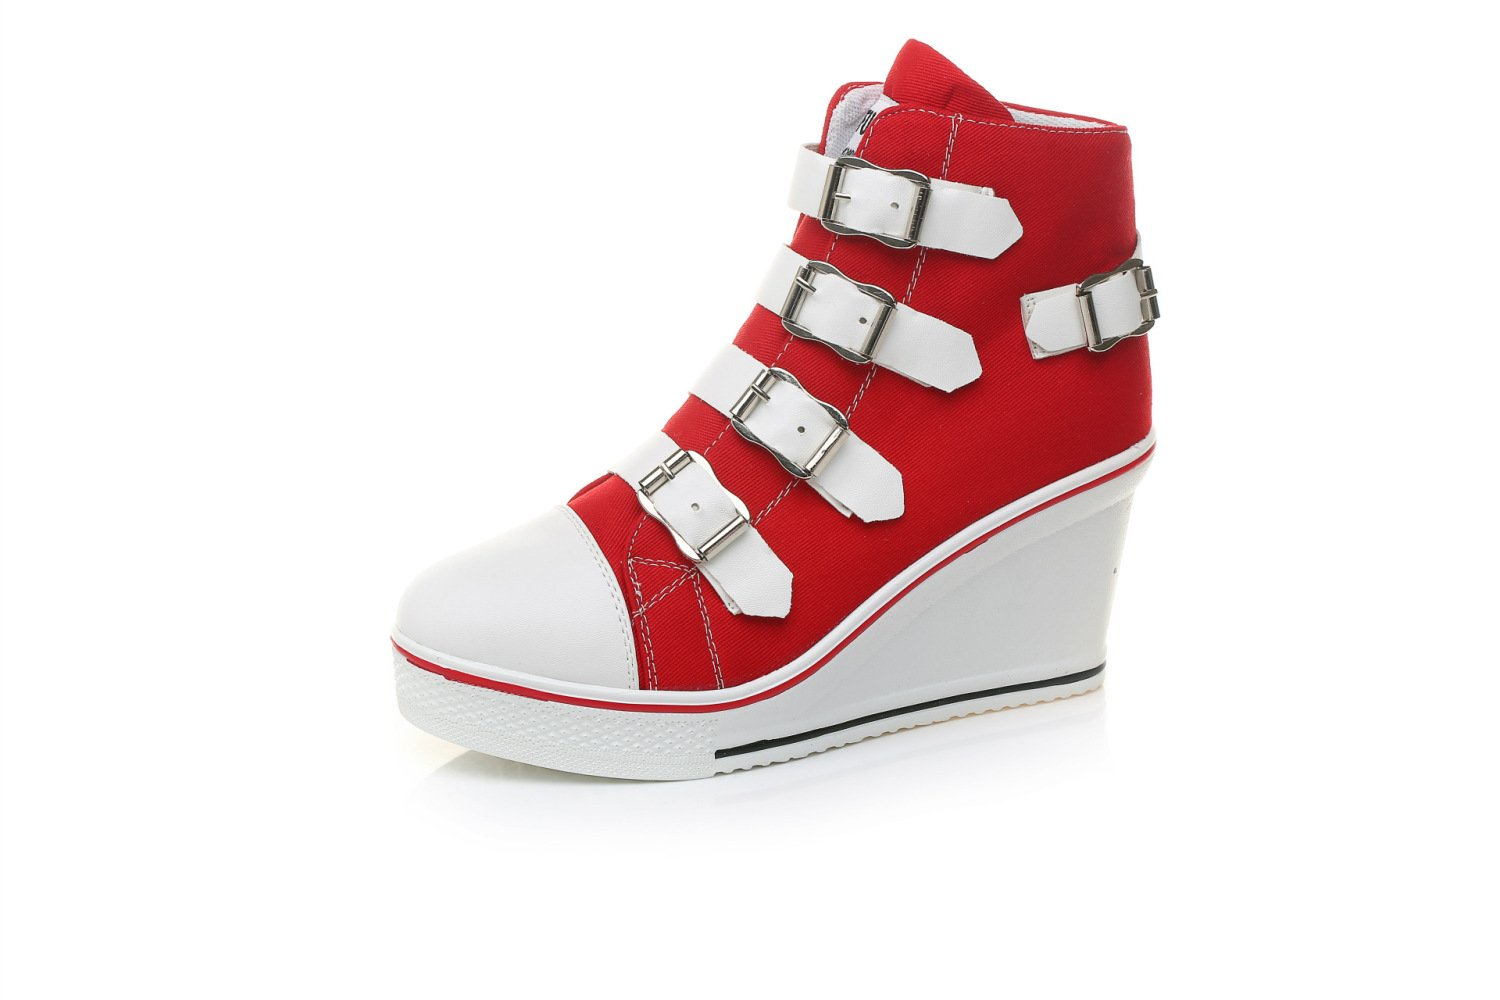 NBWE Femmes Wedge Raise Heels Sneakers Toile Casual Chaussures 8cm Raise Taille Chaussures Zipper Lace Up Taille 40-43 Chaussures Casual Red a3f79ac - robotanarchy.space